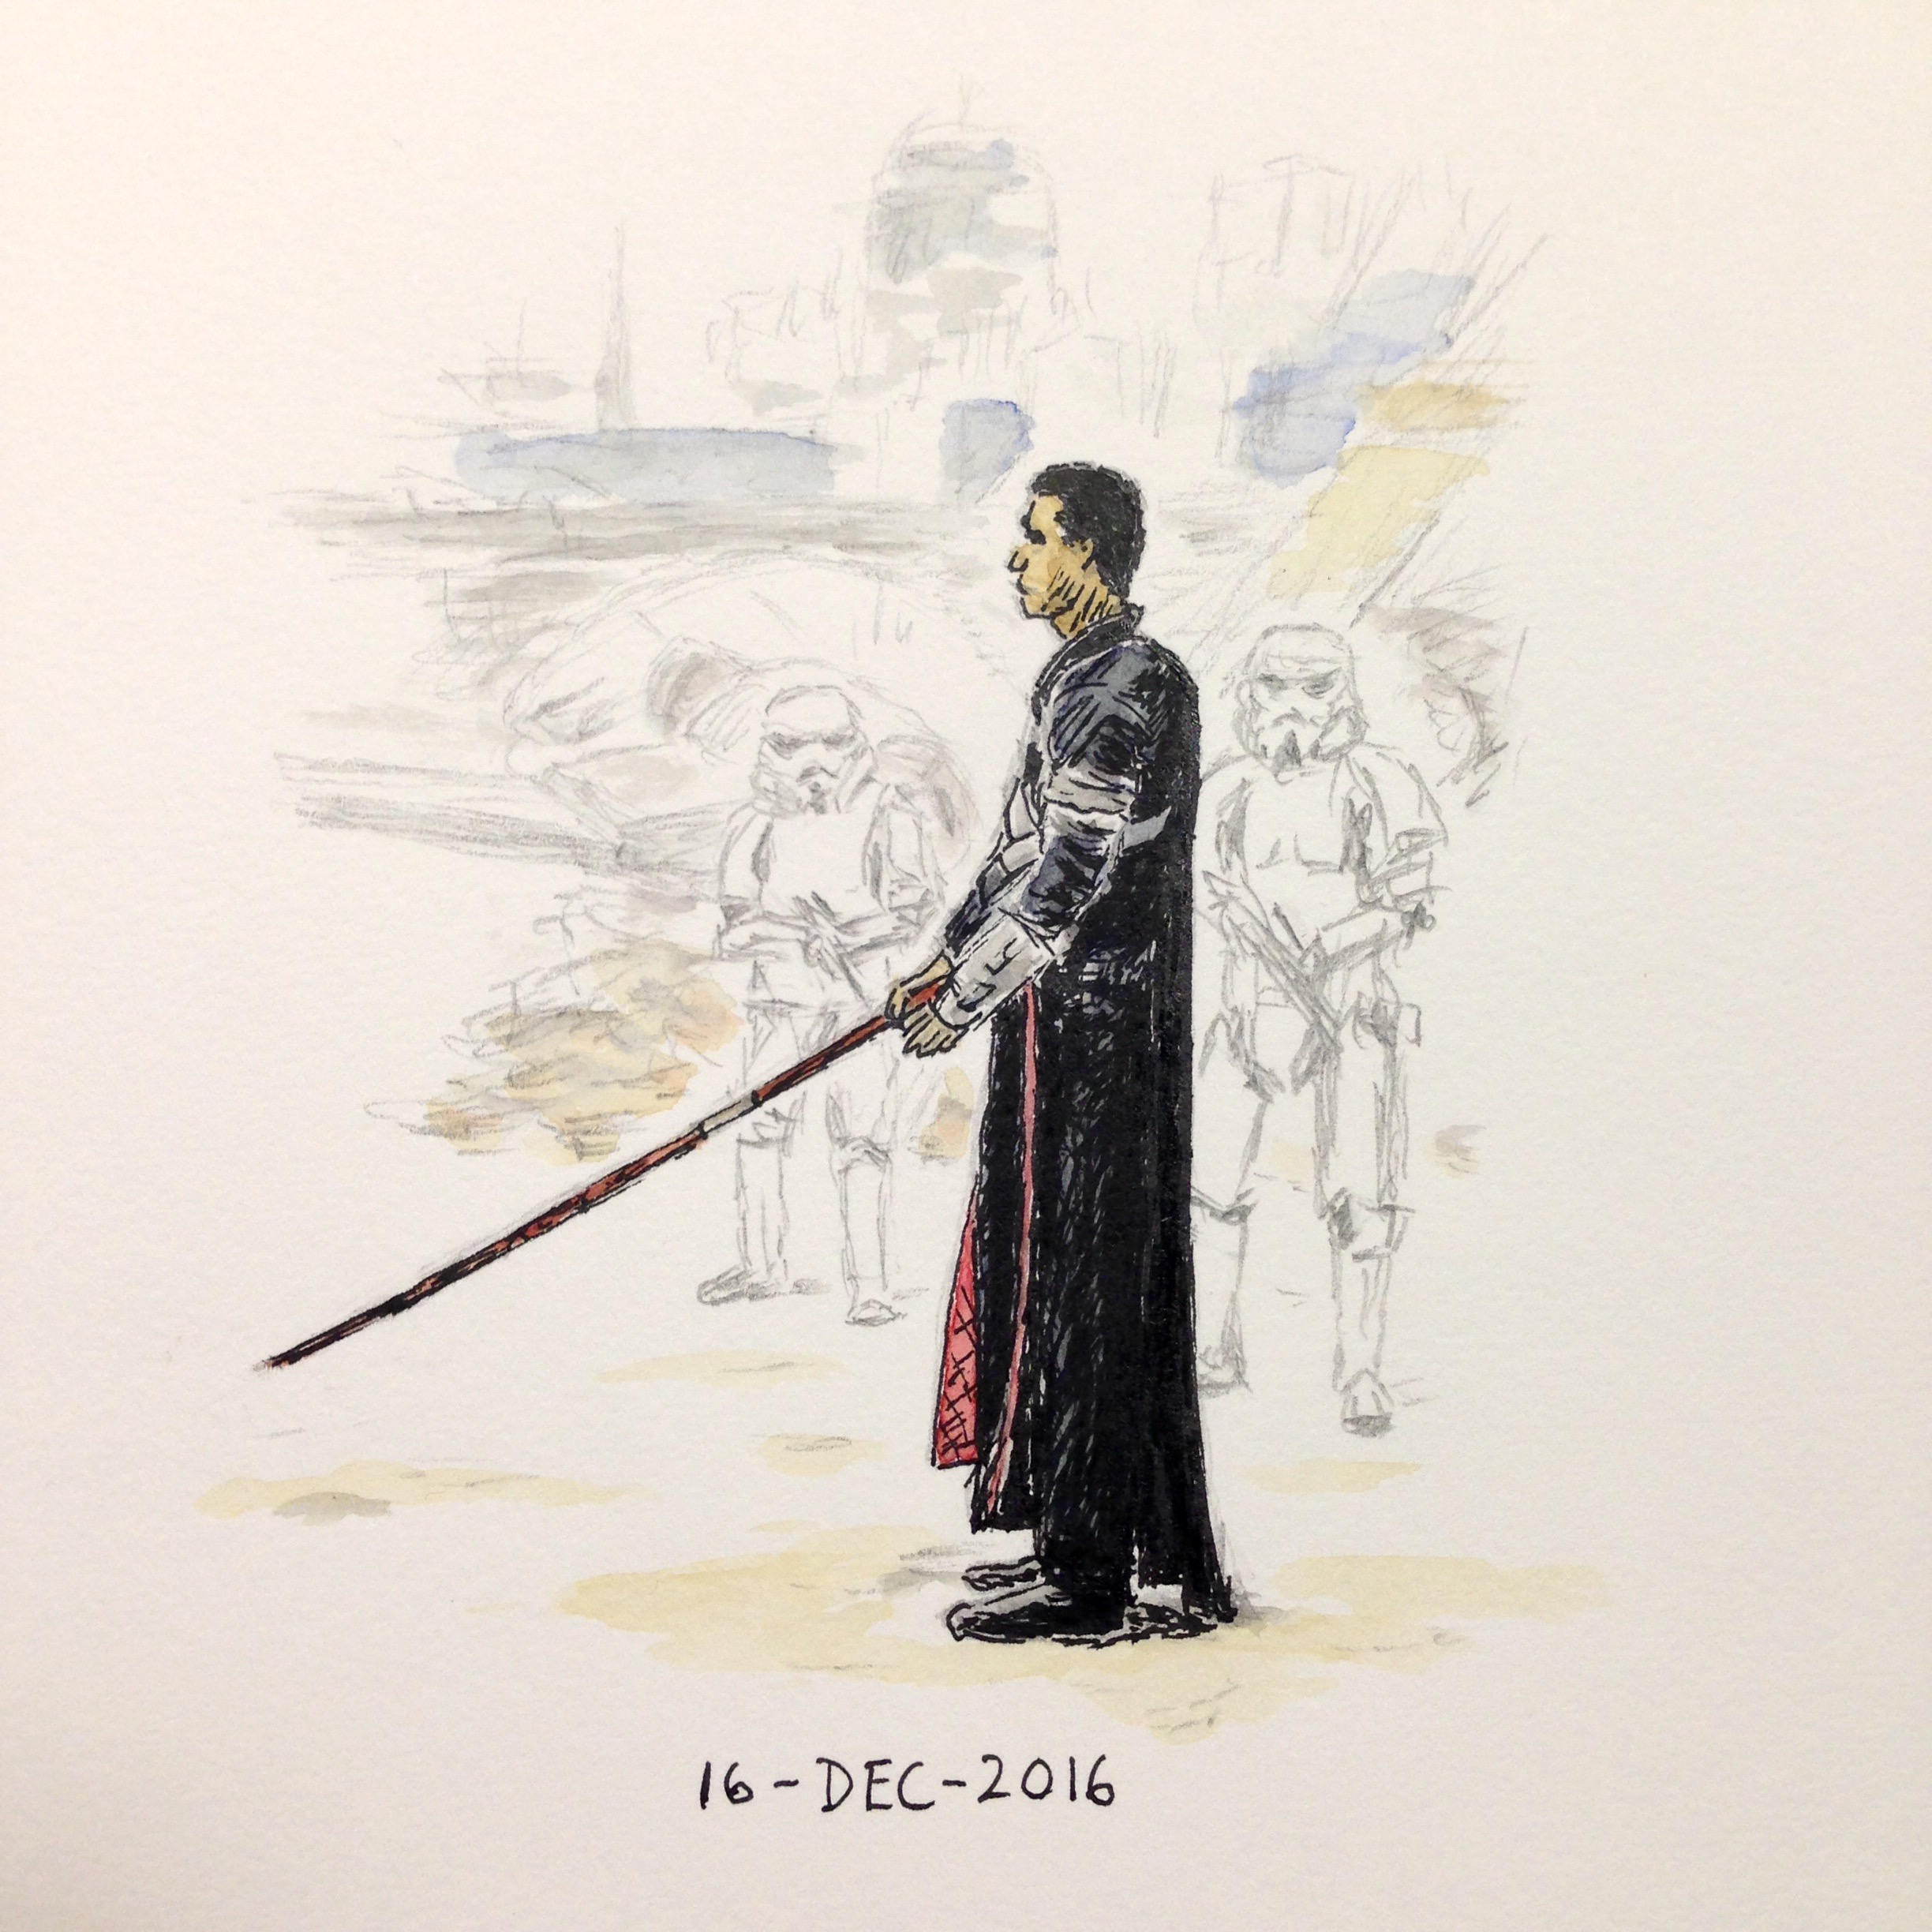 Star Wars fan art drawing of Chirrut Îmwe